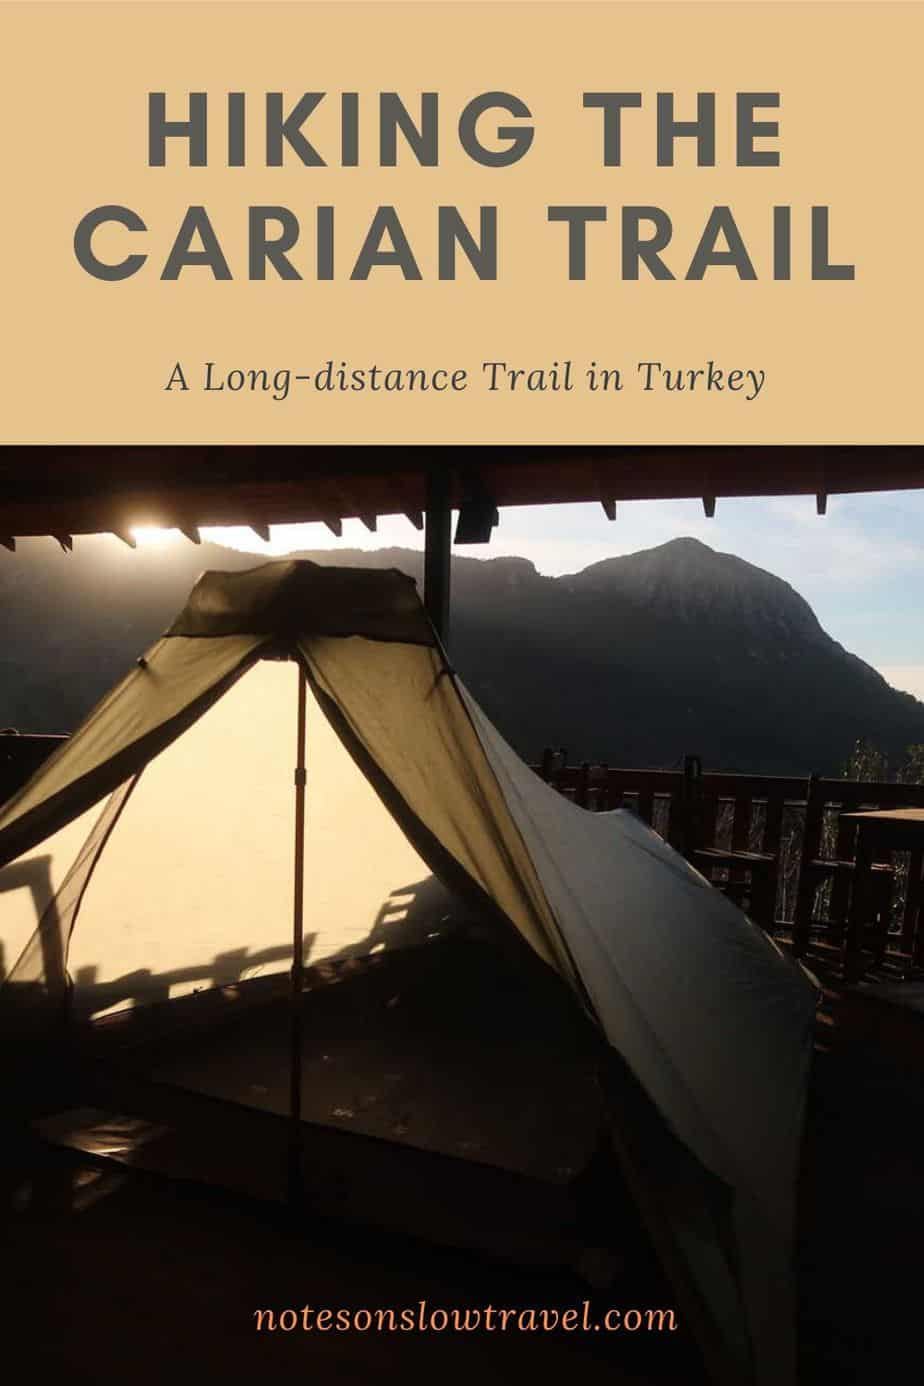 Hiking the Carian Trail - Setting up camp